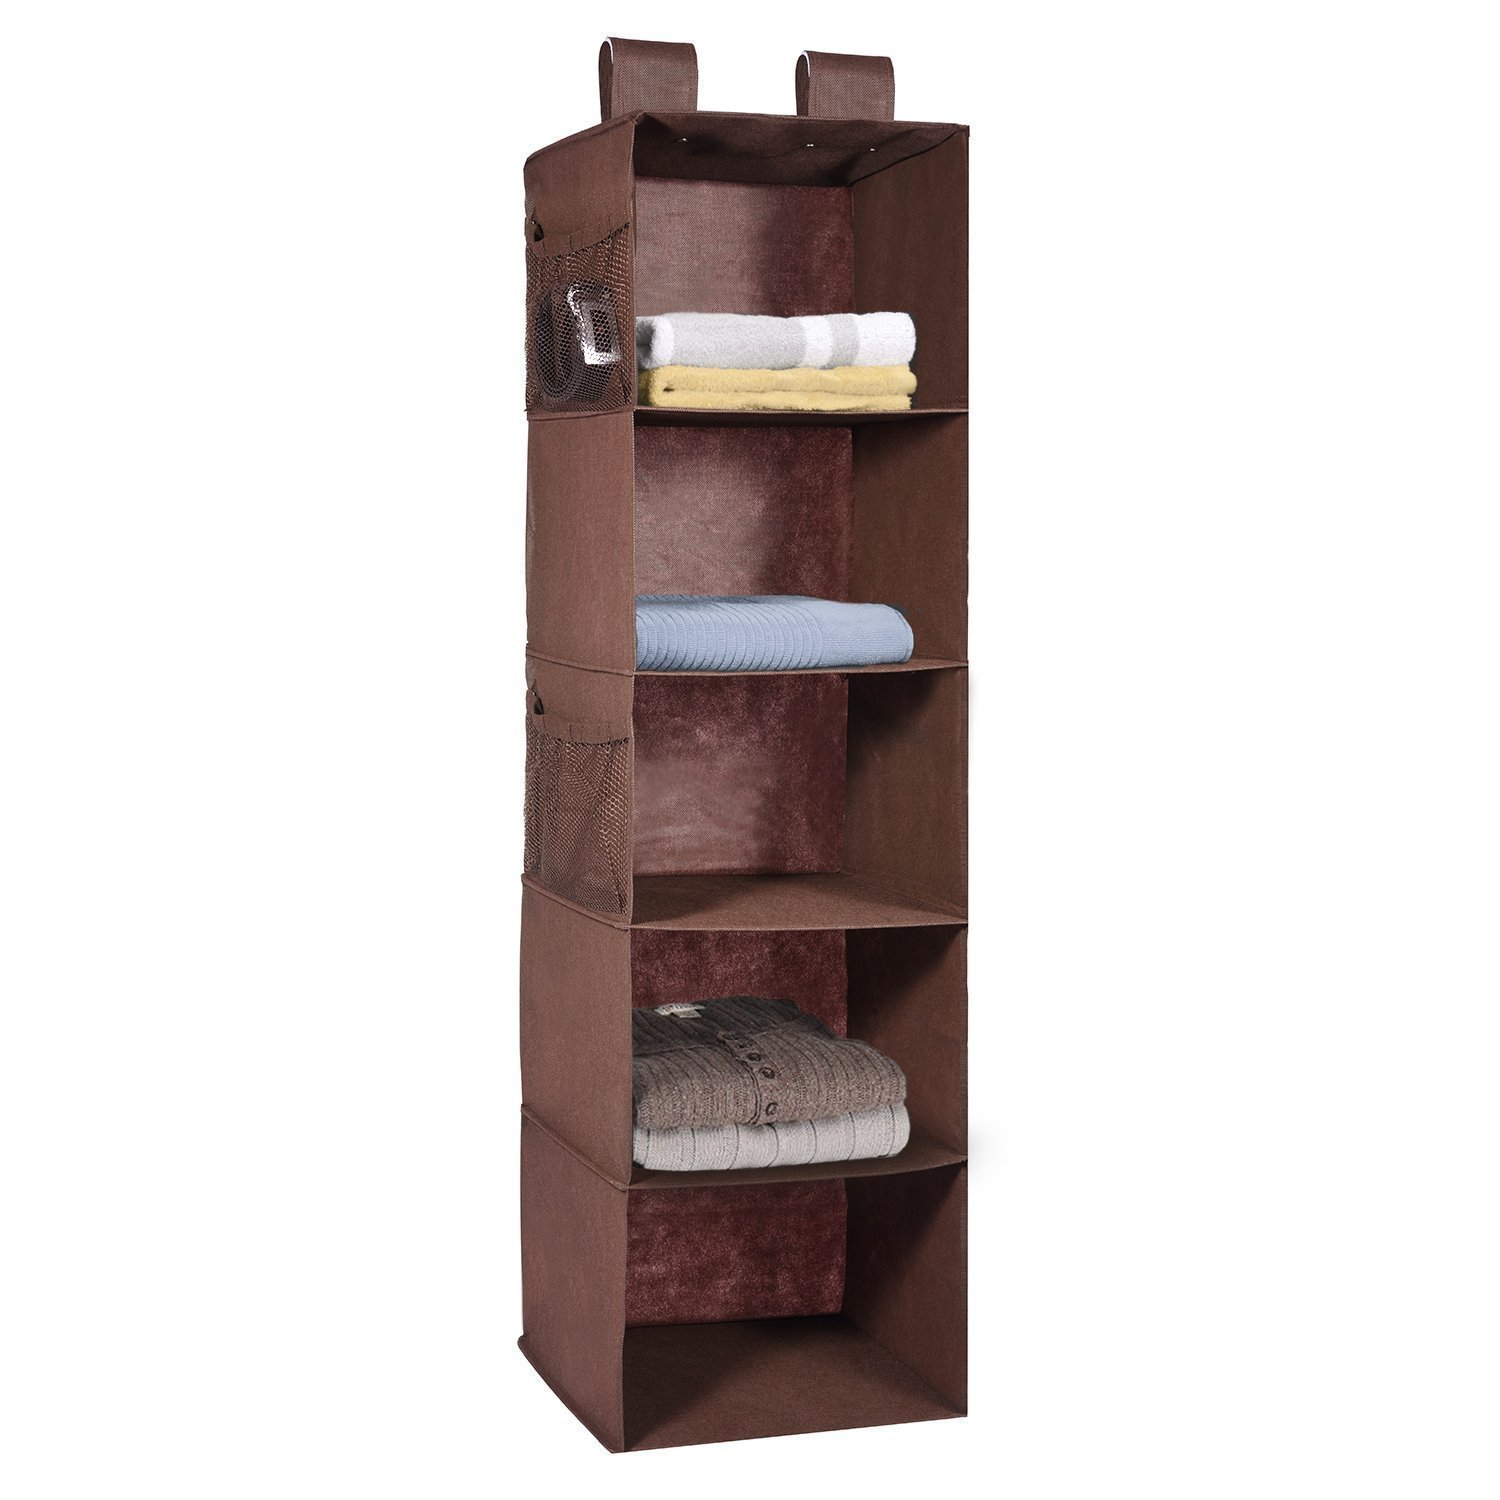 Hanging Wardrobe Storage, MaidMAX 5 Shelves Heavy Duty Organiser Storage Unit with 4 Side mesh Pockets for Sweaters, Shoes, Accessories - Brown(30 x 30 x 106 cm)